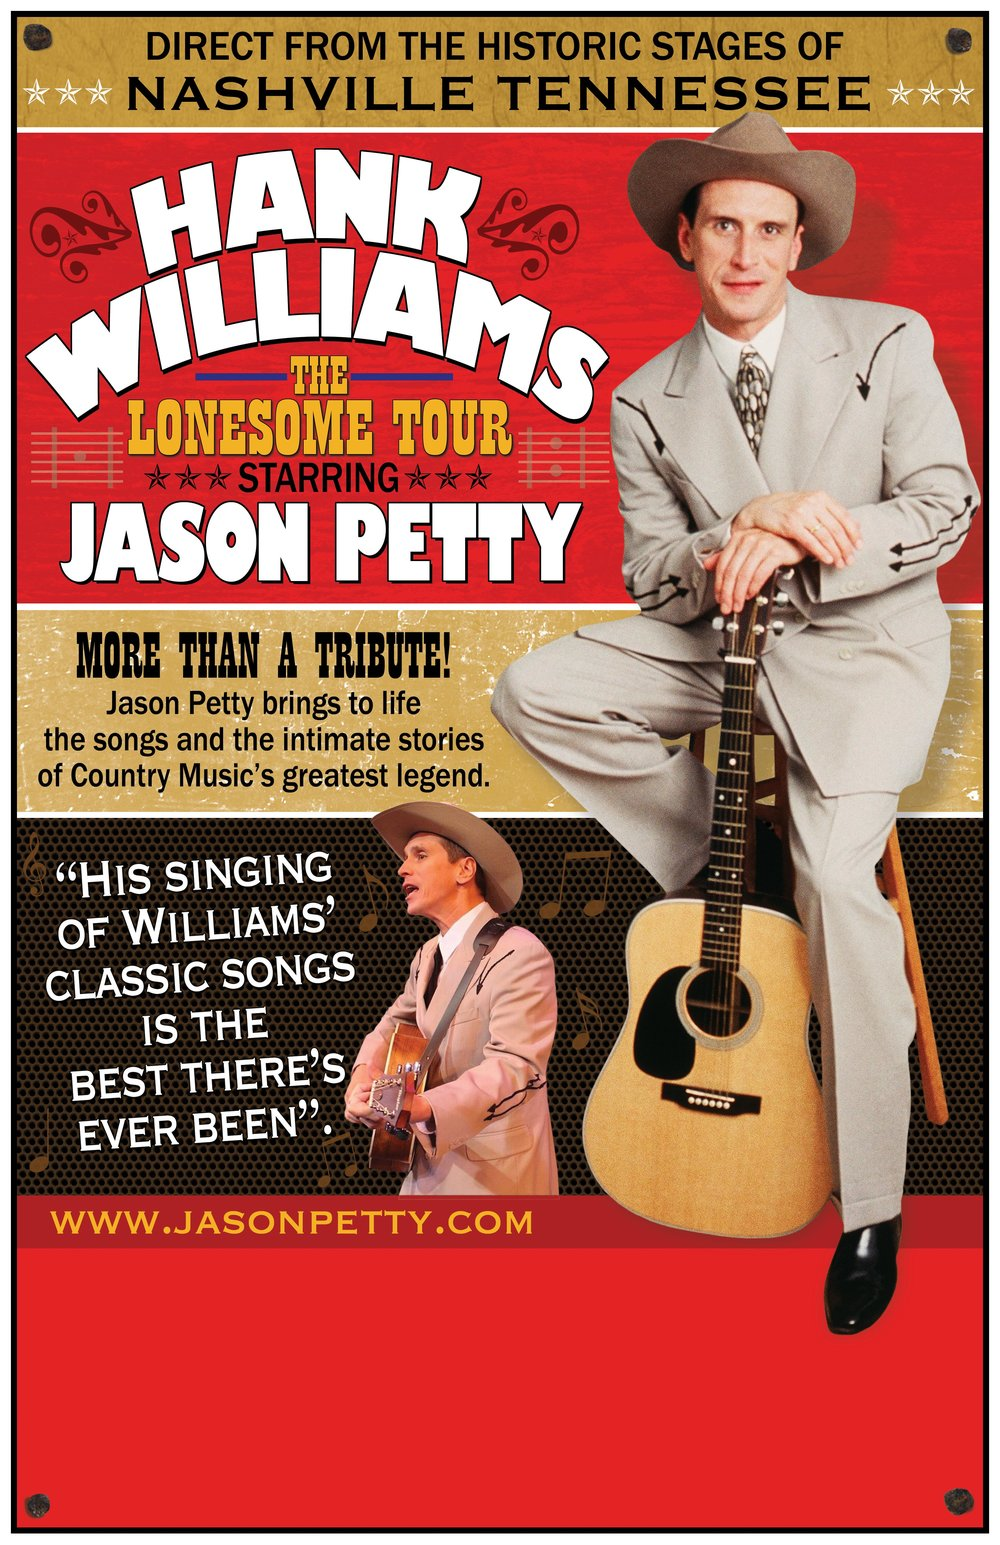 Hank_Williams_JASON_PETTY_2017_TourPoster_BIG.jpg